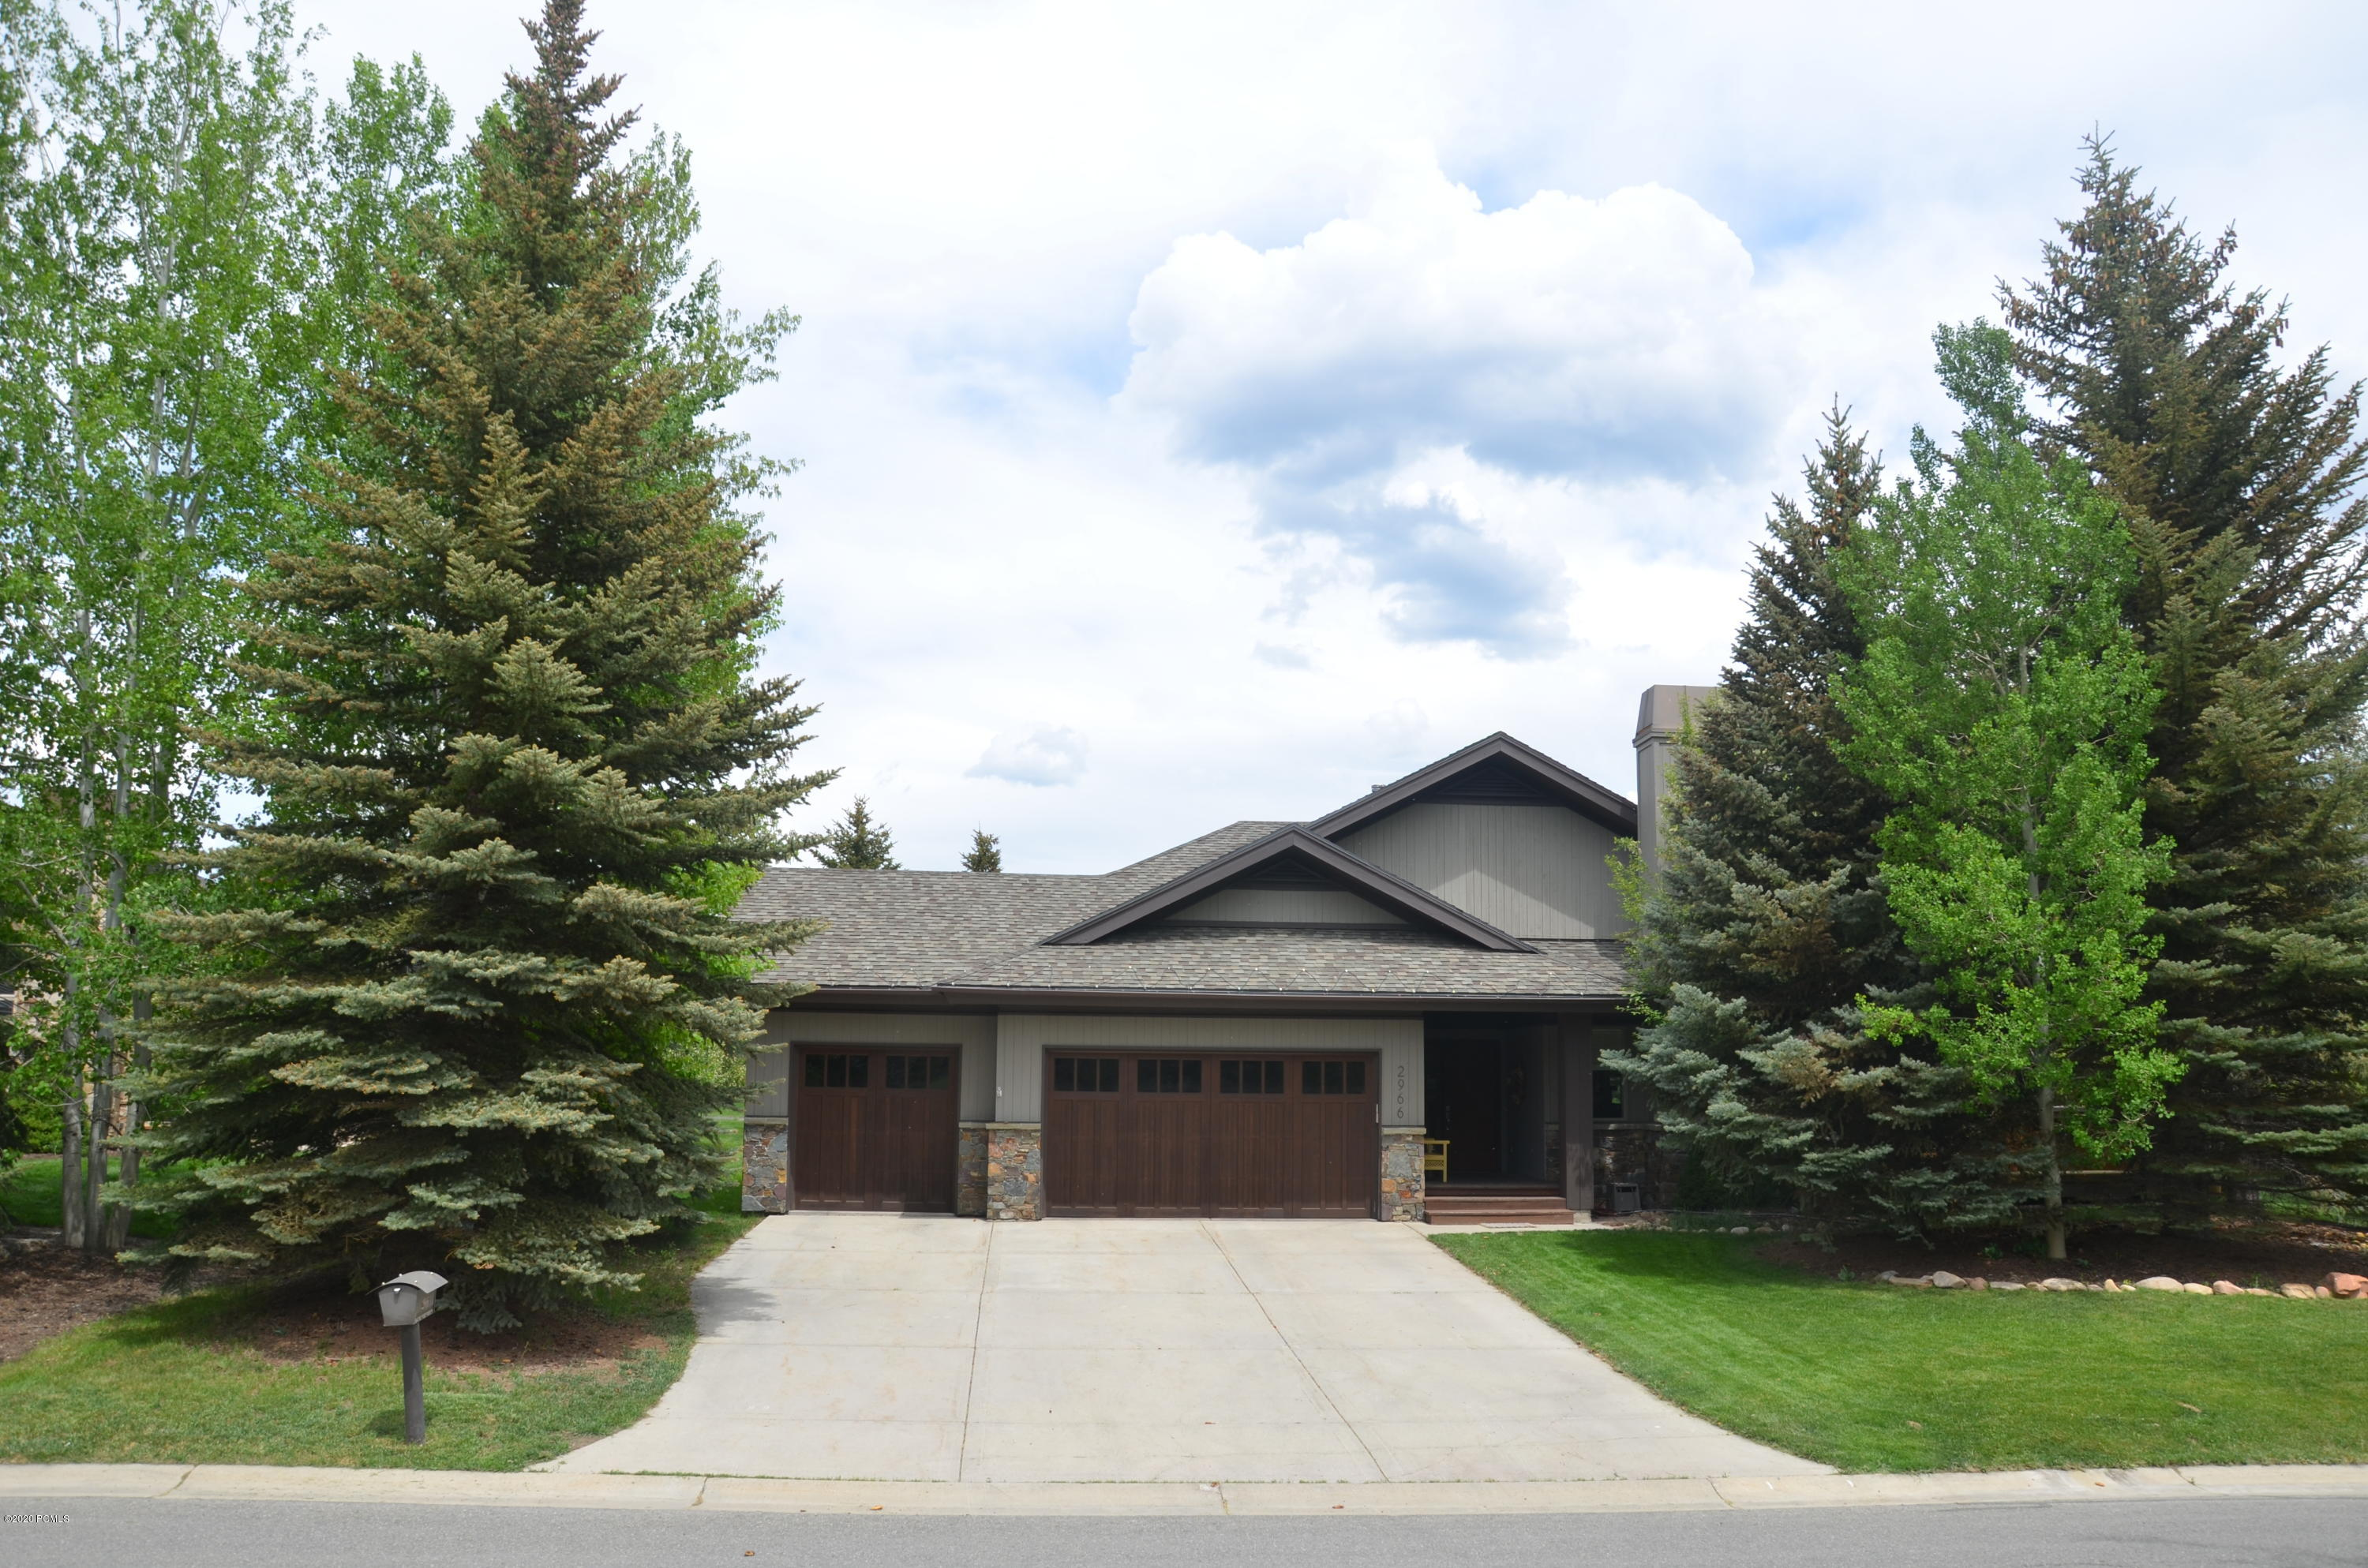 2966 Estates Drive, Park City, Utah 84060, 4 Bedrooms Bedrooms, ,5 BathroomsBathrooms,Single Family,For Sale,Estates Drive,12003629